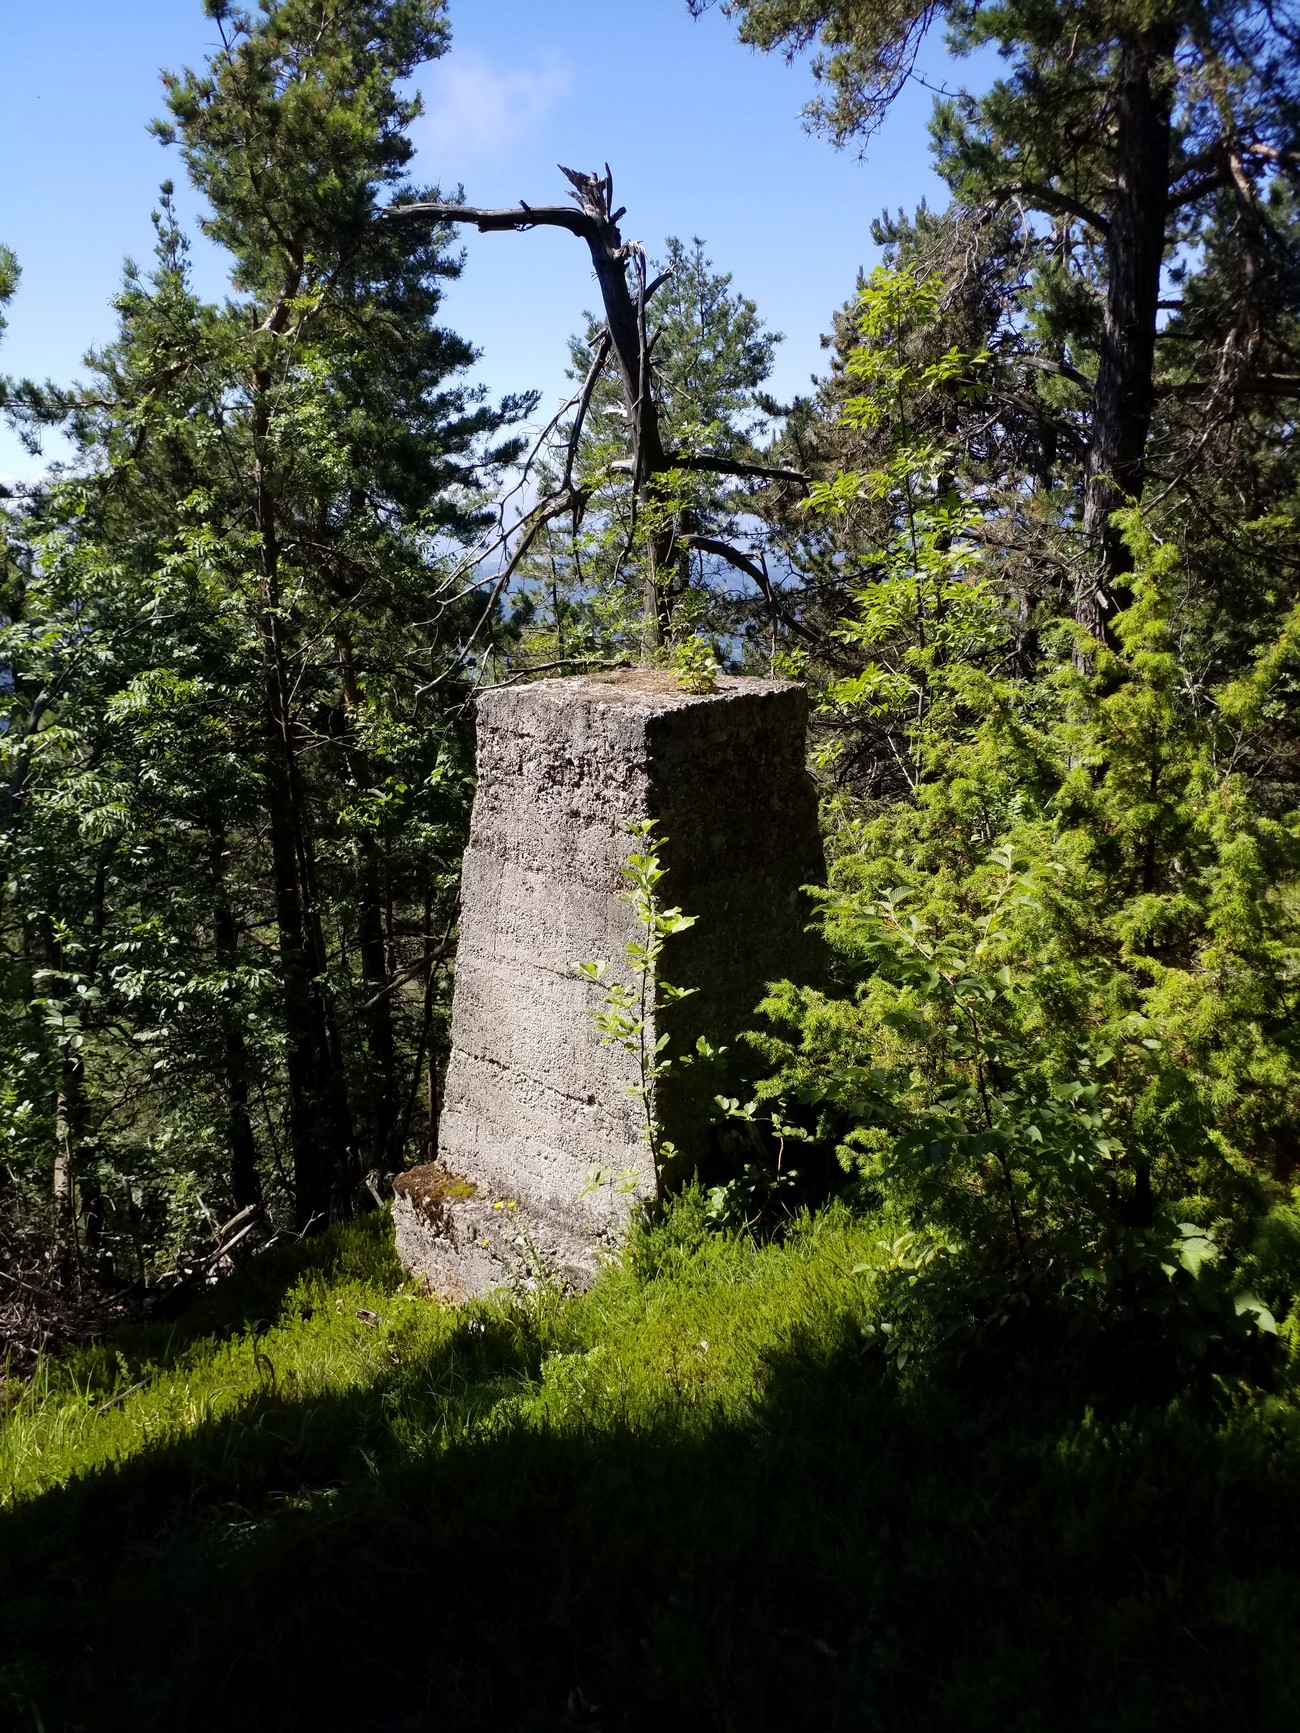 Remains of a German watchtower on Goljek, a hill 809 metres high above the village of Topol (Sveta Katarina) above Ljubljana. Source: Author: Peter Mikša.